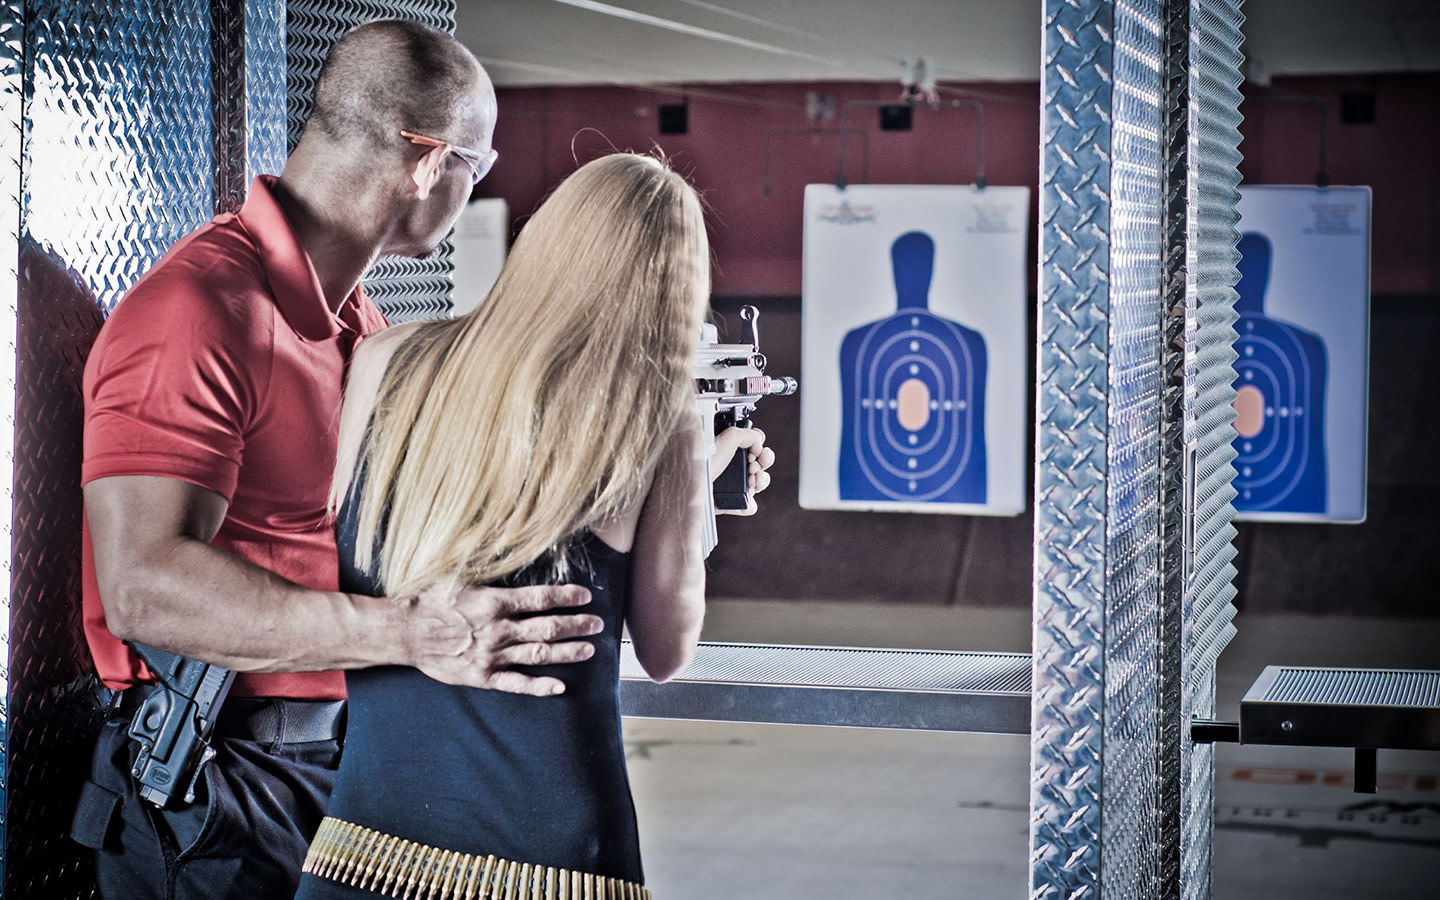 Gun range instruction